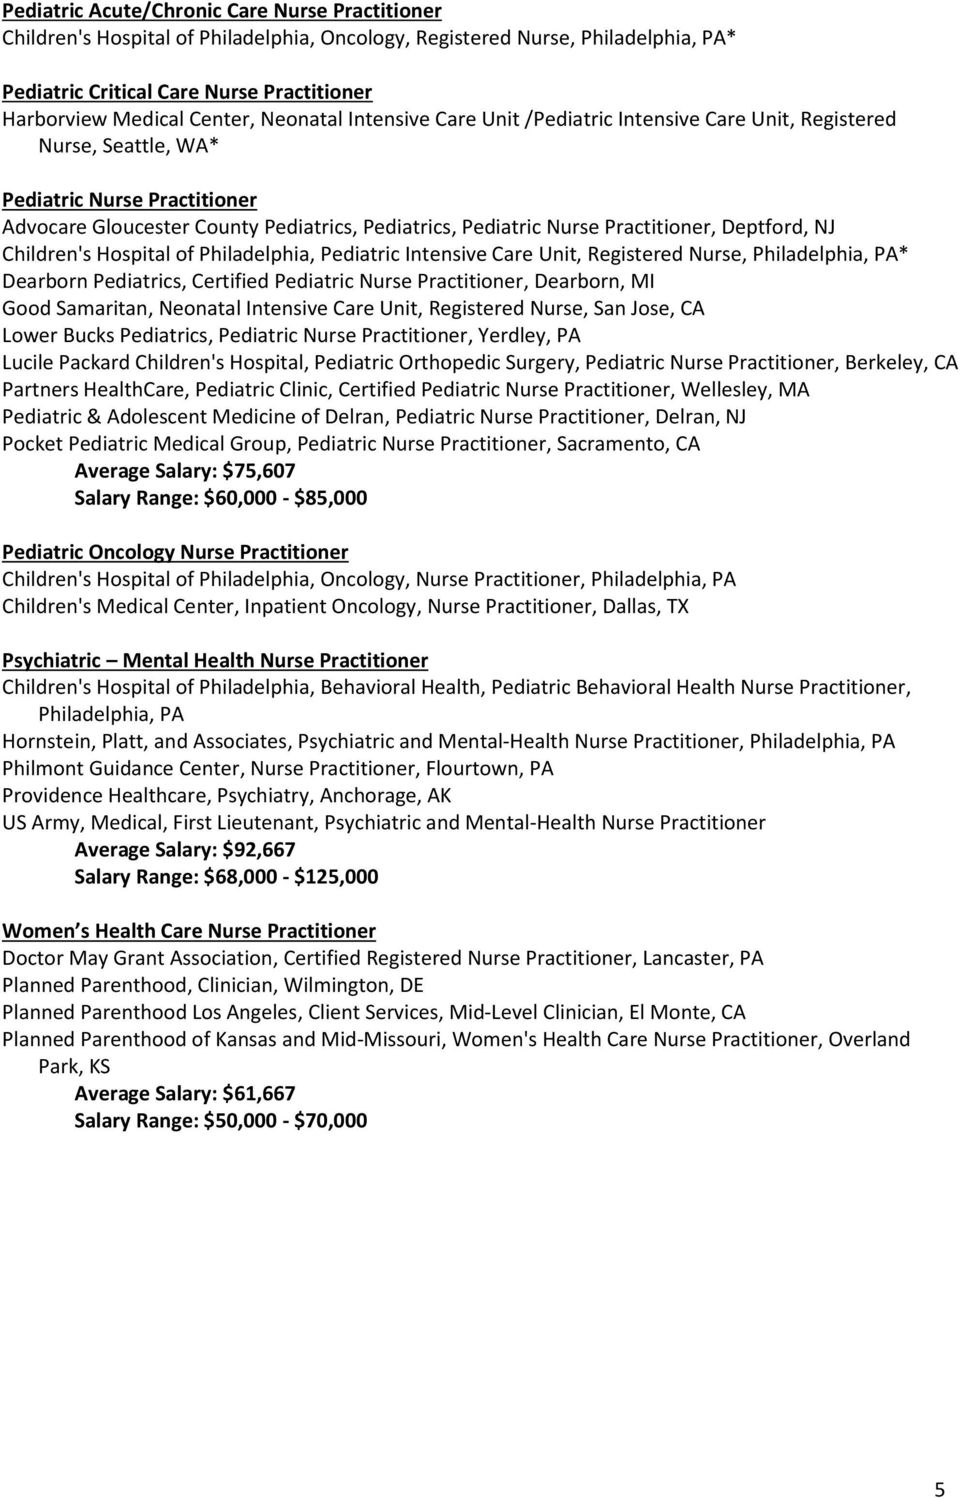 Practitioner, Deptford, NJ Children's Hospital of Philadelphia, Pediatric Intensive Care Unit, Registered Nurse, Philadelphia, PA* Dearborn Pediatrics, Certified Pediatric Nurse Practitioner,